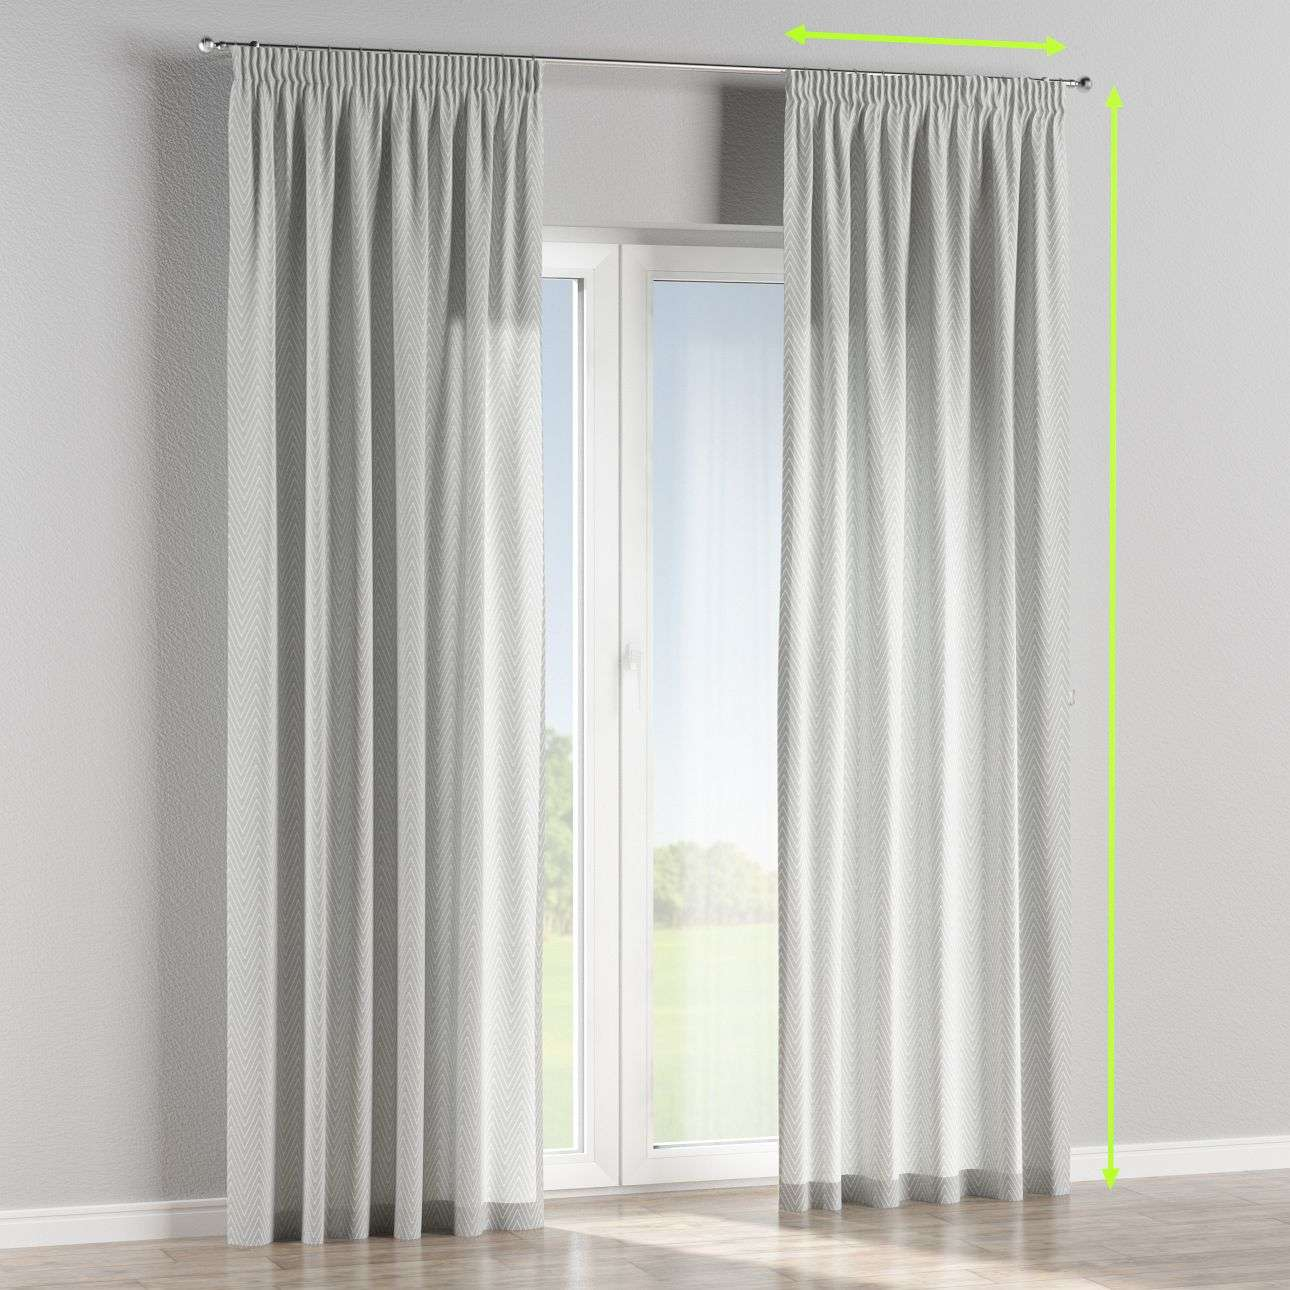 Pencil pleat lined curtains in collection Brooklyn, fabric: 137-87